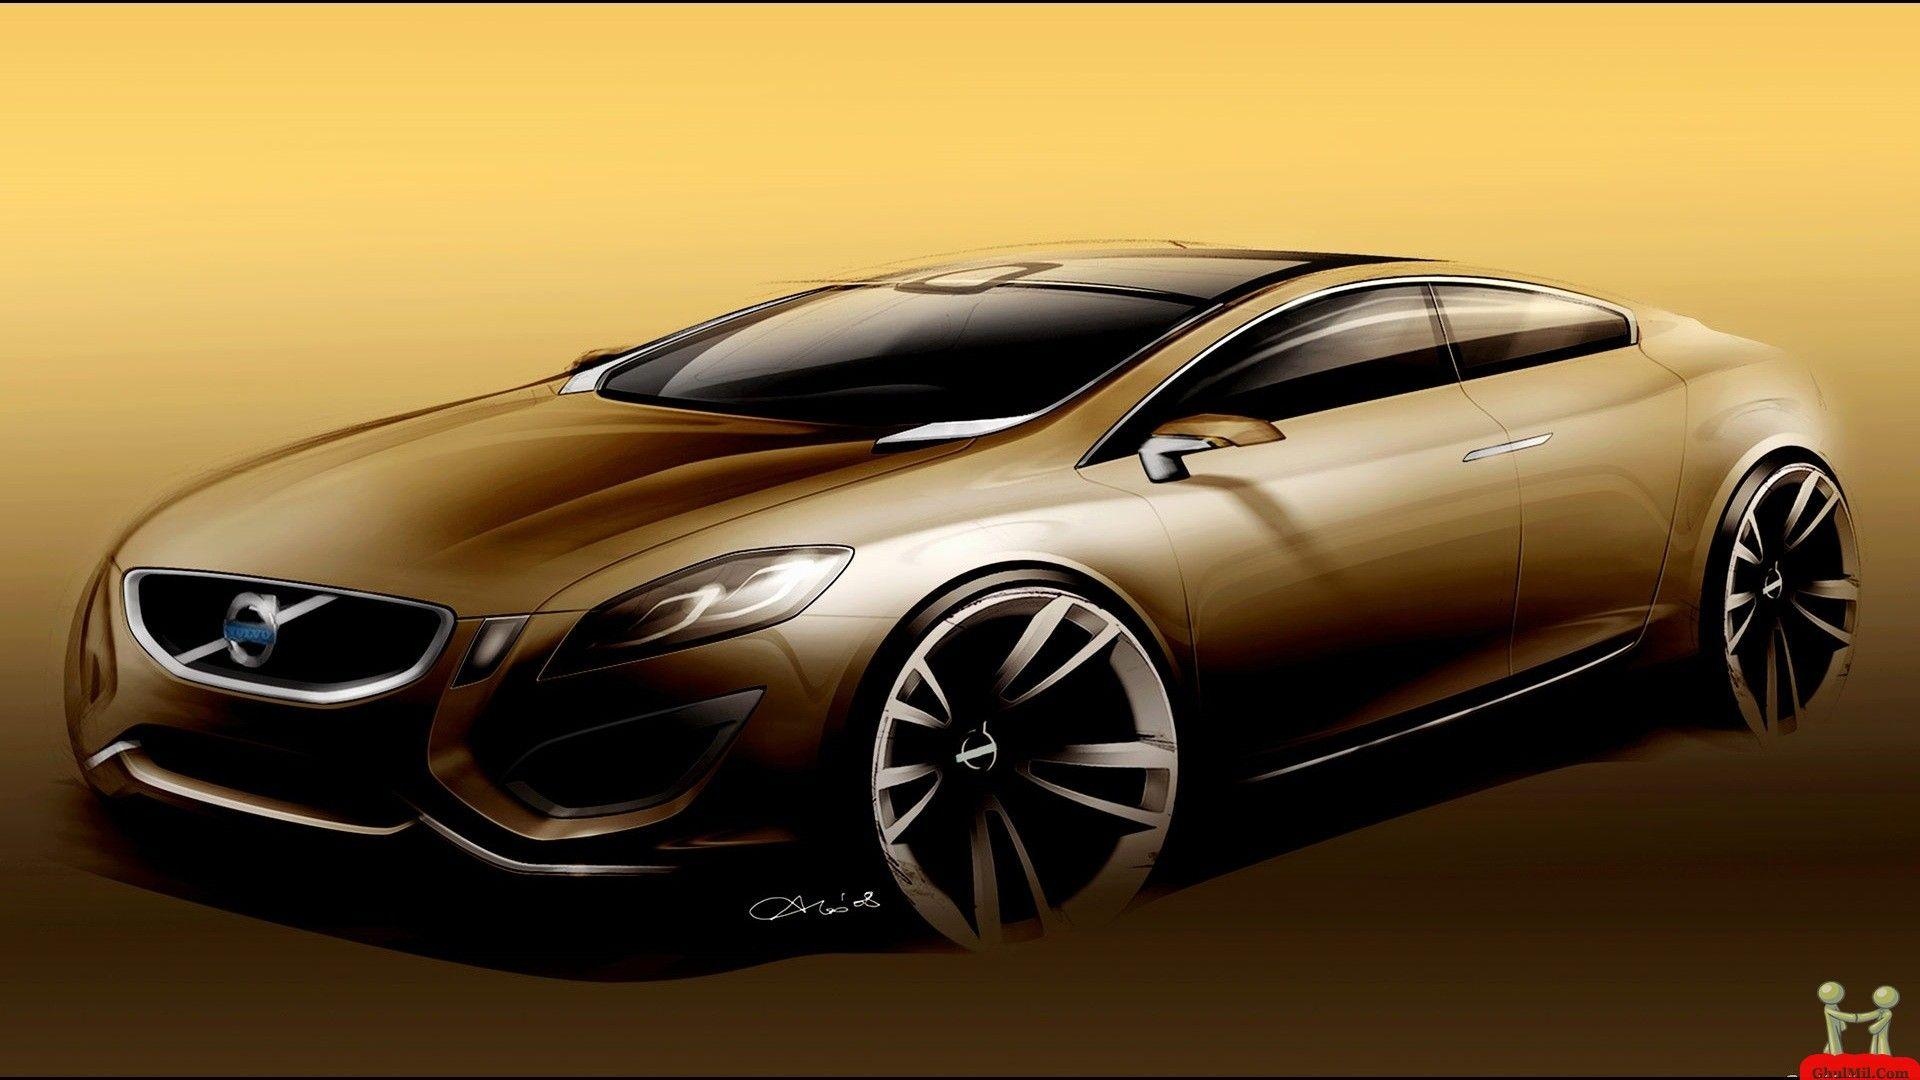 Gold Car Wallpapers: Gold Cars Wallpapers